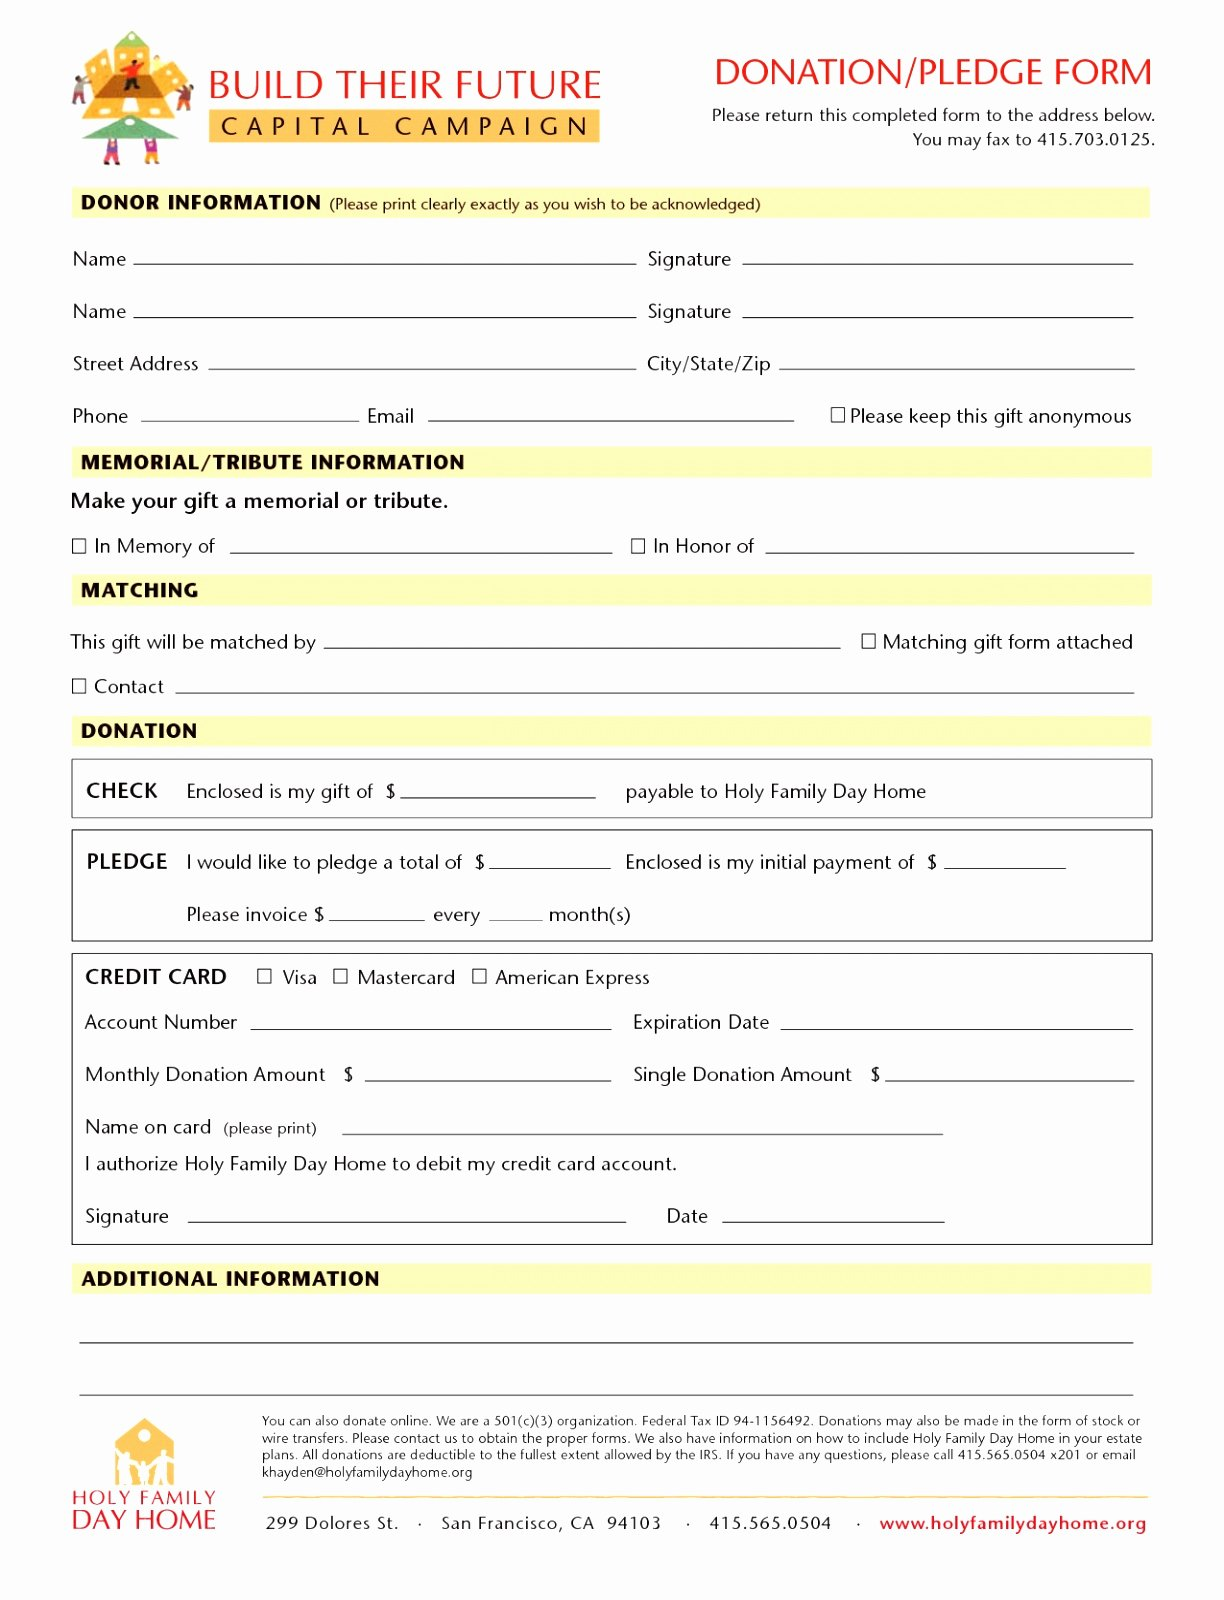 9 Charity Pledge form Template Dtauw